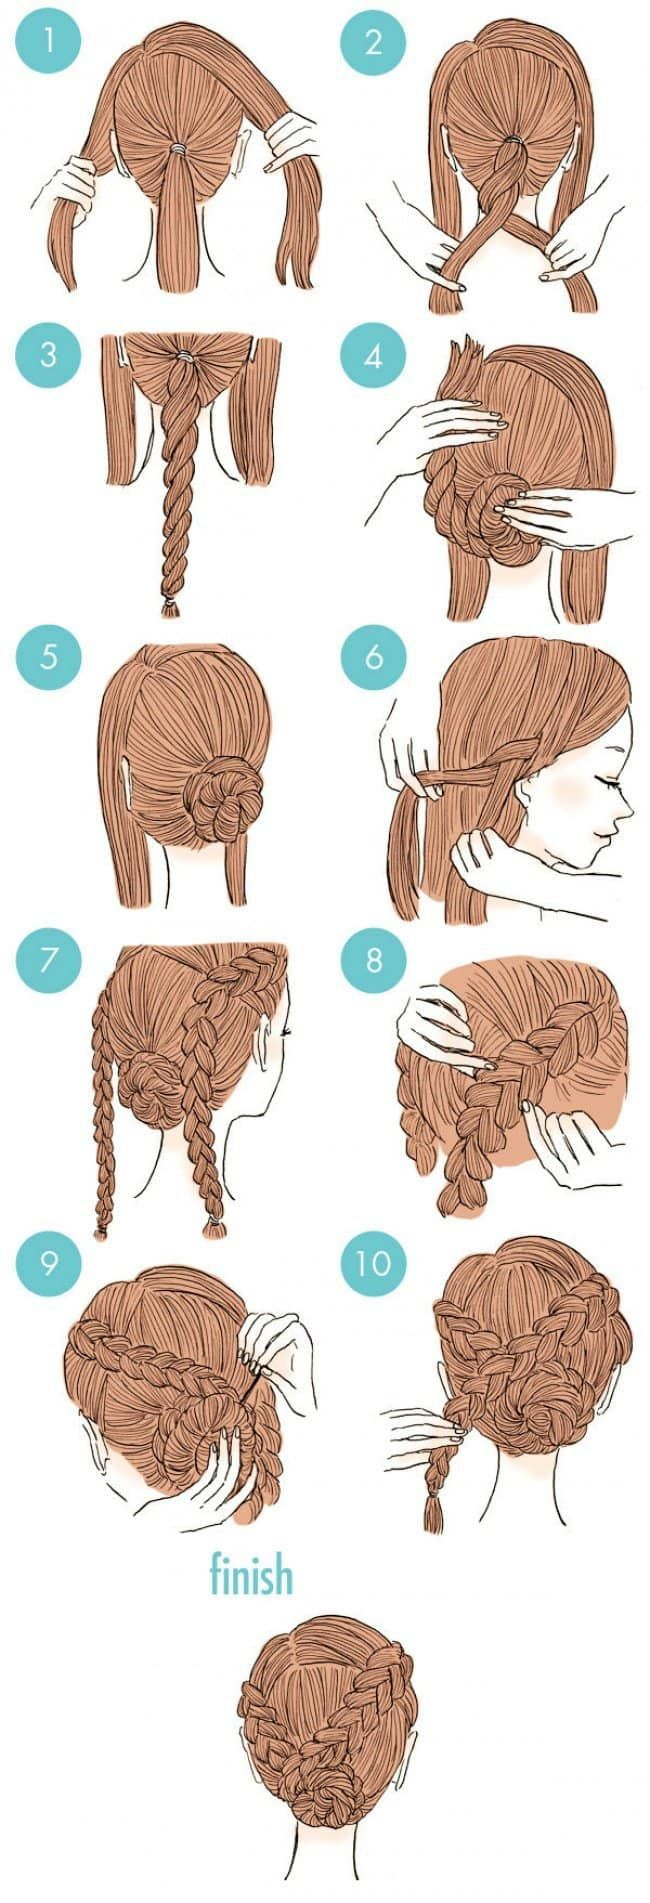 easy and cute hairstyles that can be done in just a few minutes